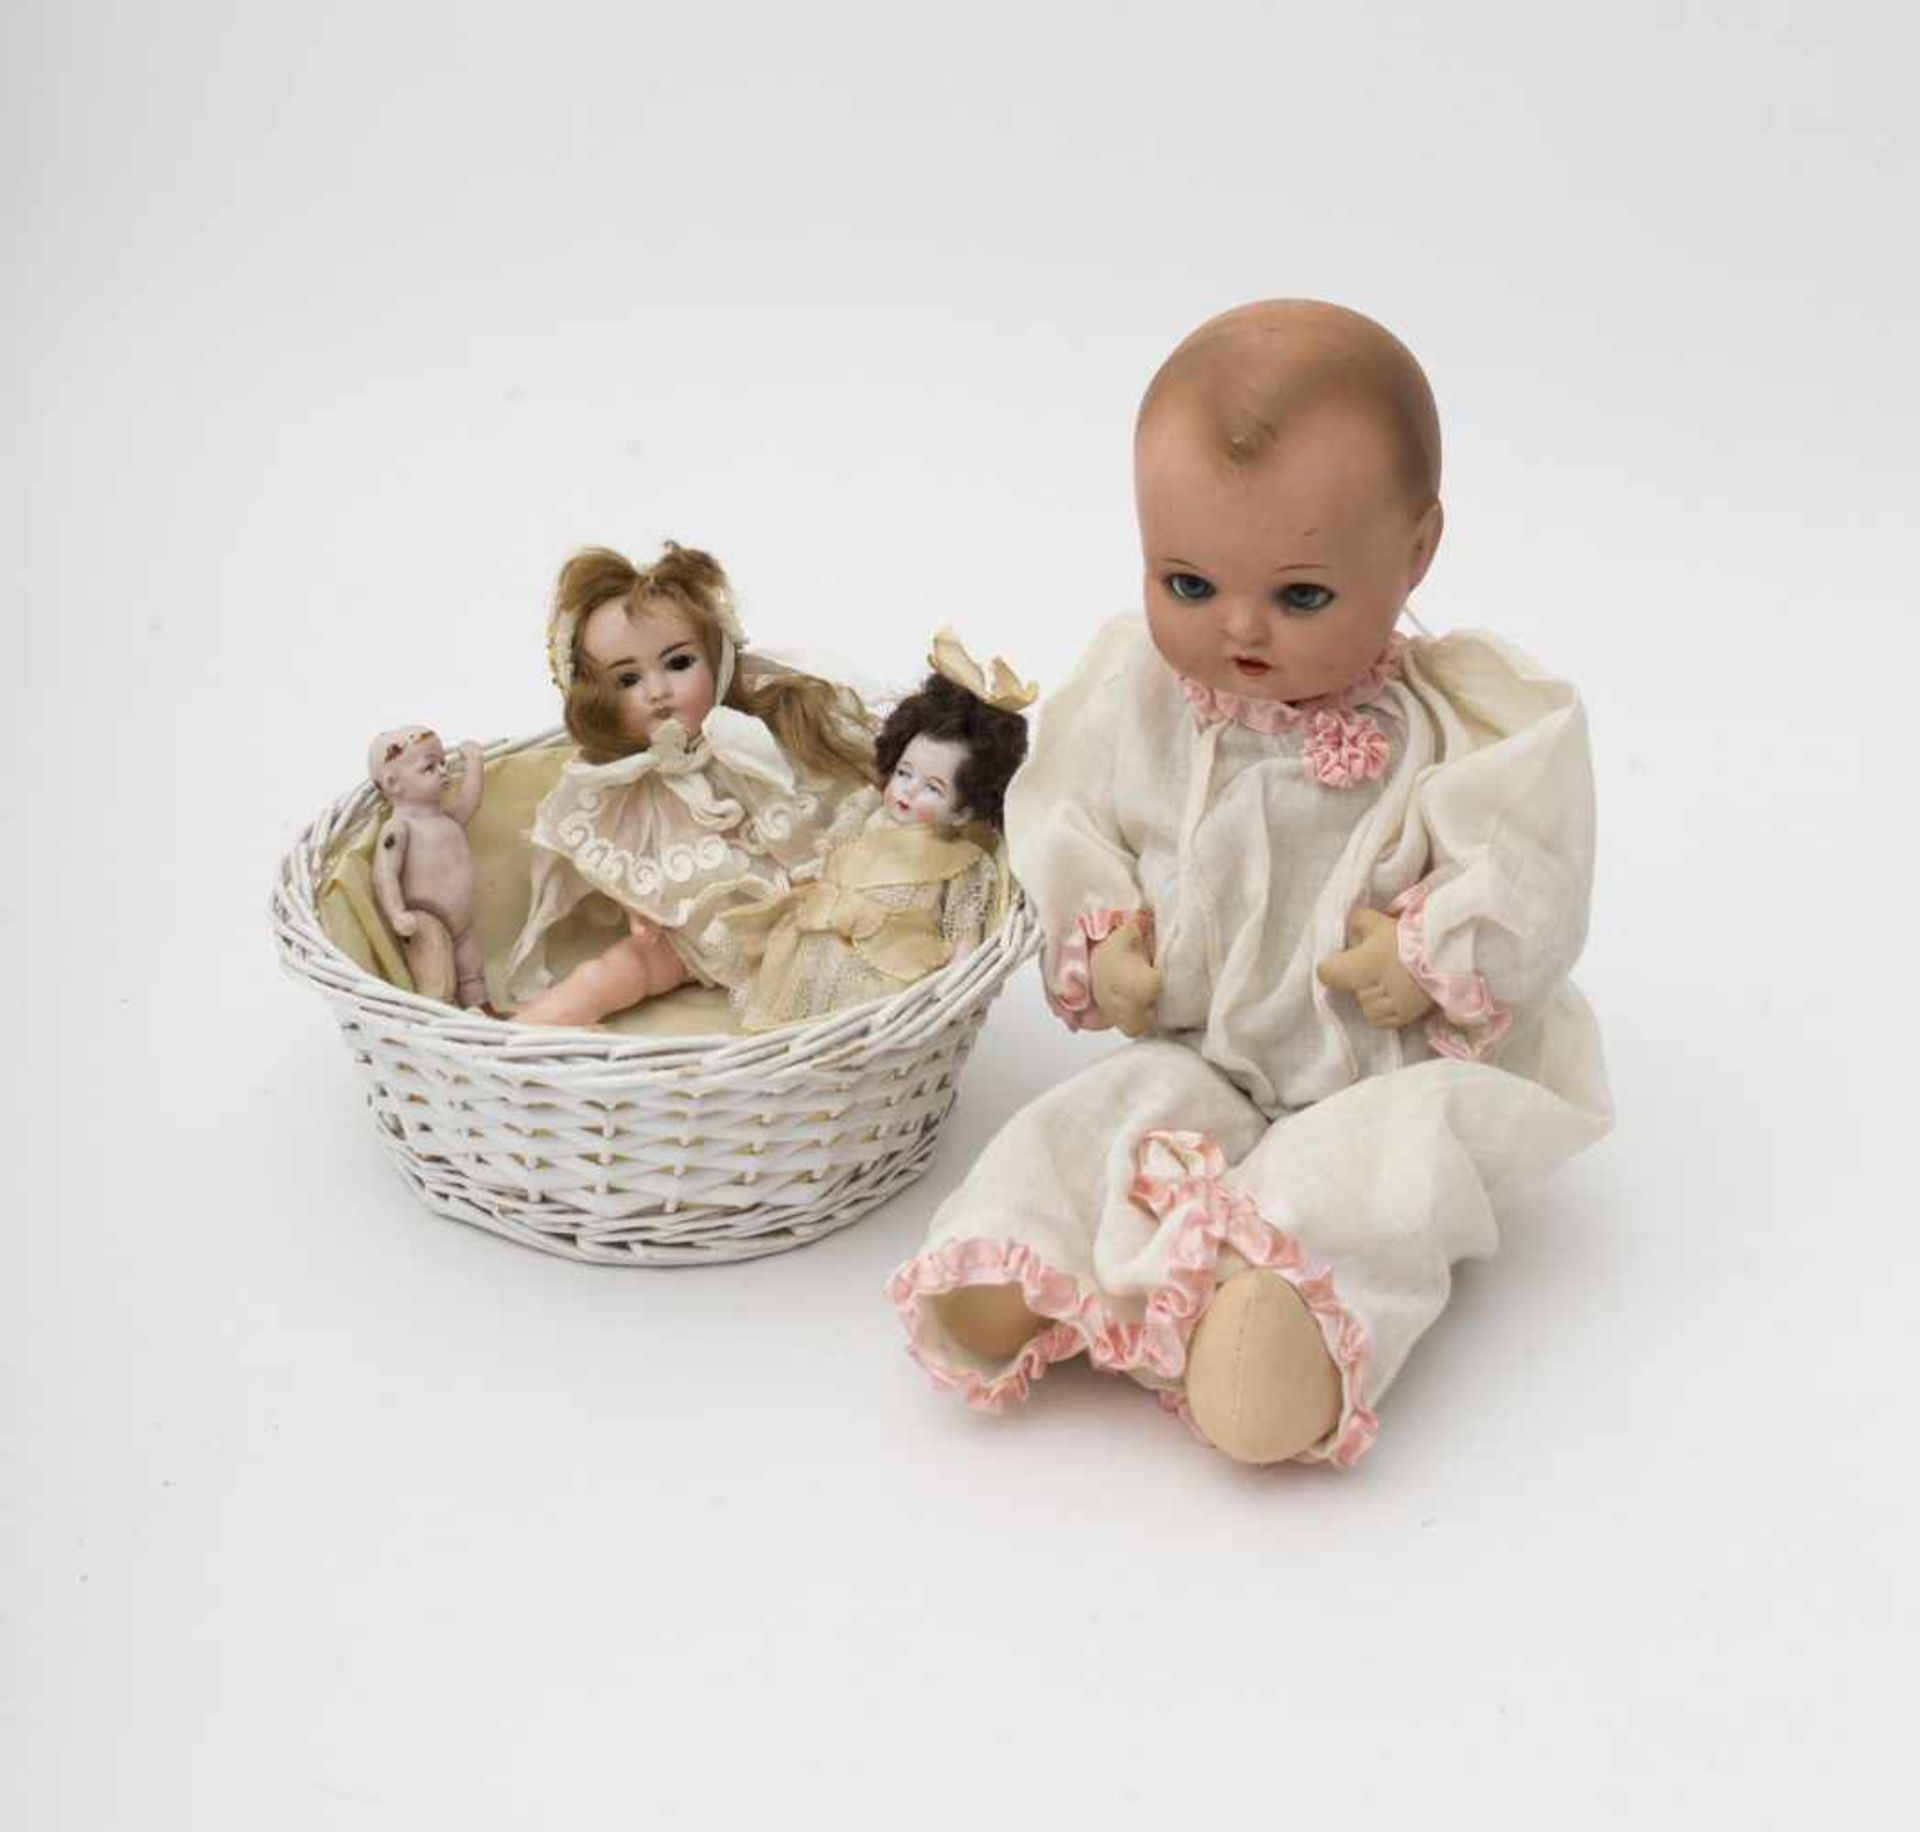 Basket Includes small baby doll with composition head –4 dolls in total, with biscuit head and